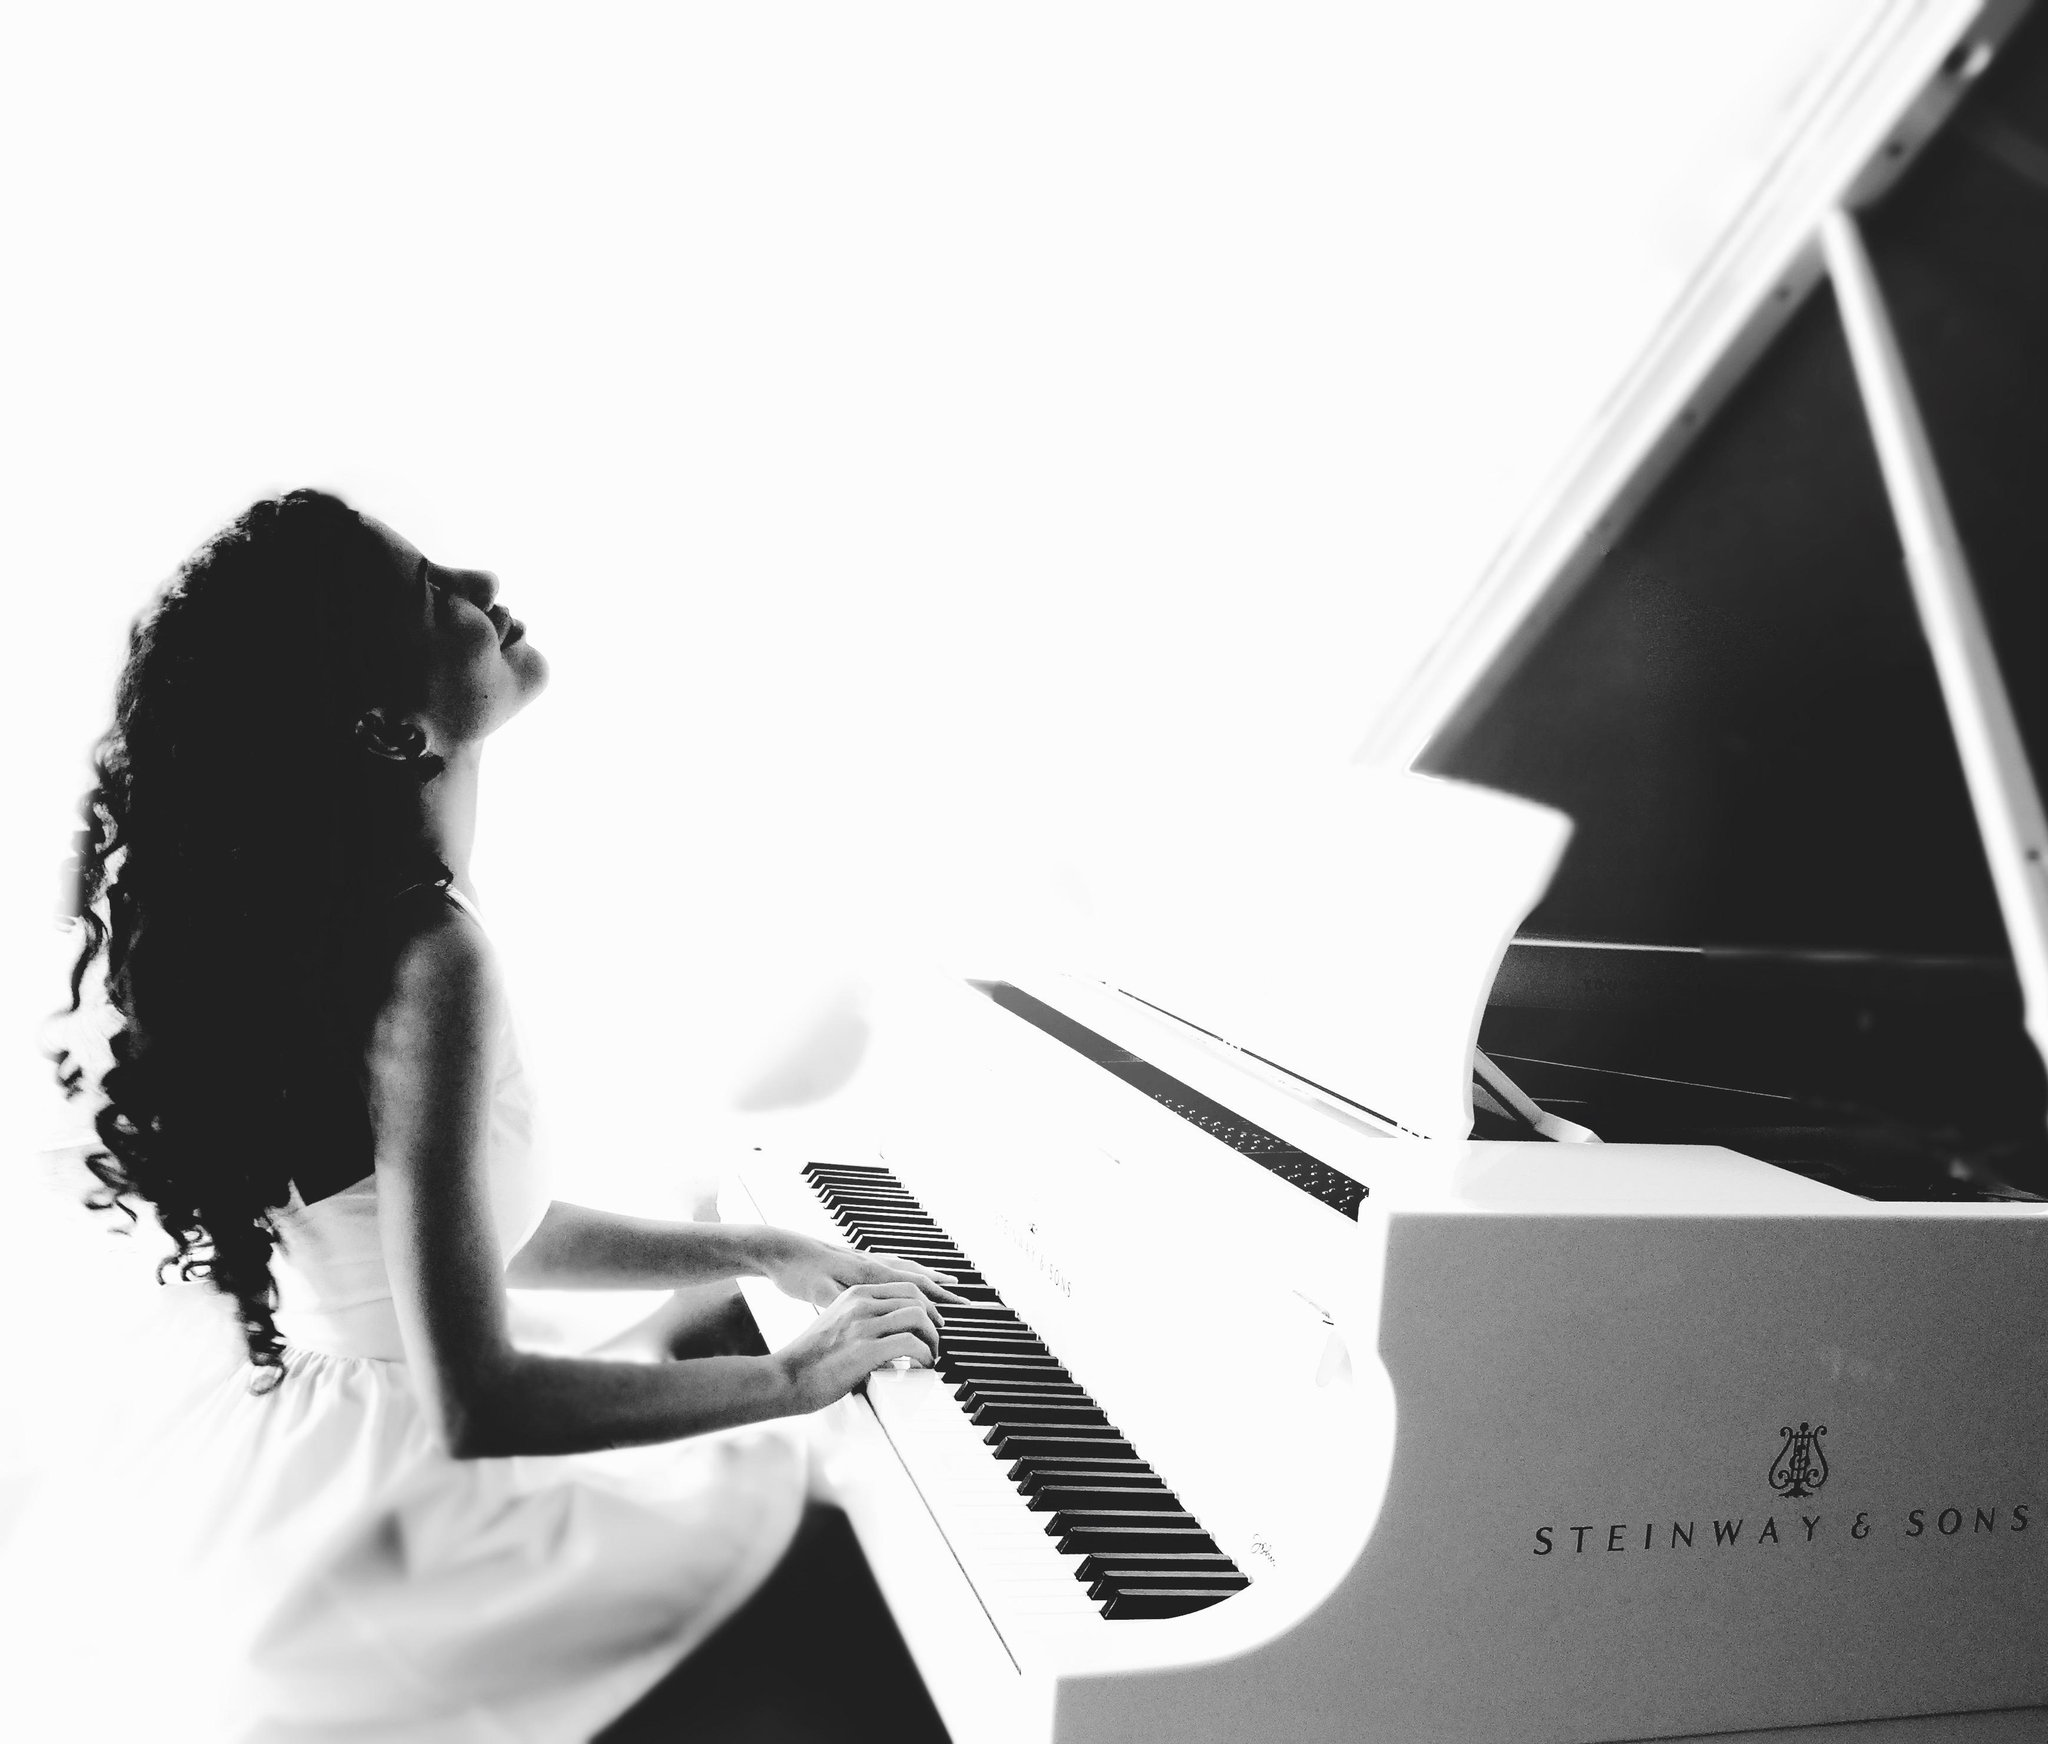 "@SteinwayAndSons Follow ""It's still magic even if you know how it's done."" — Ana Nikolic #Steinway steinway.com"